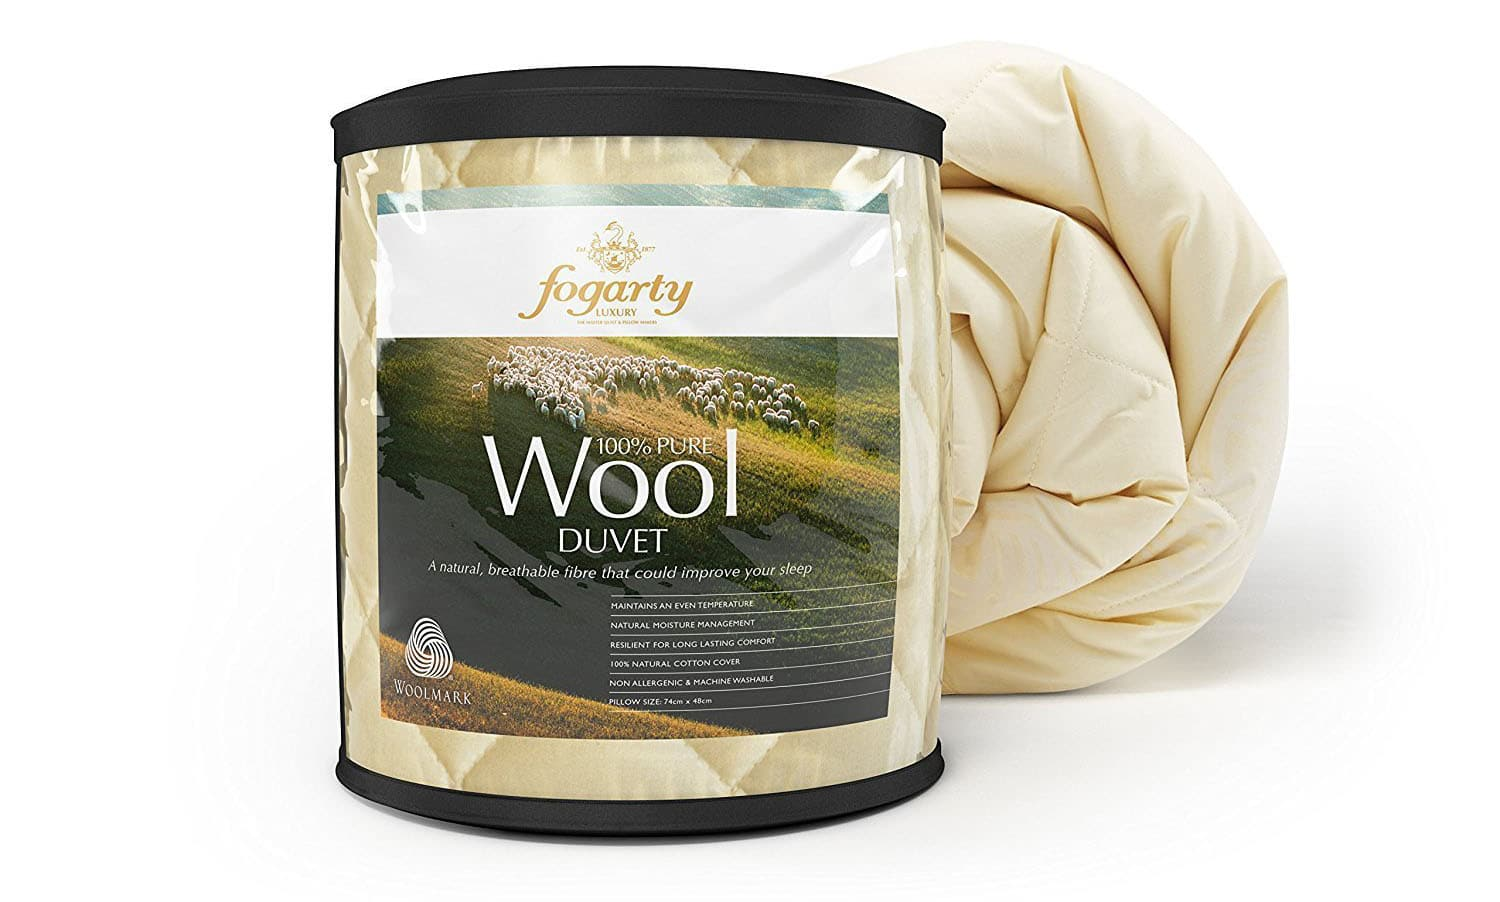 Fogarty Pure Wool